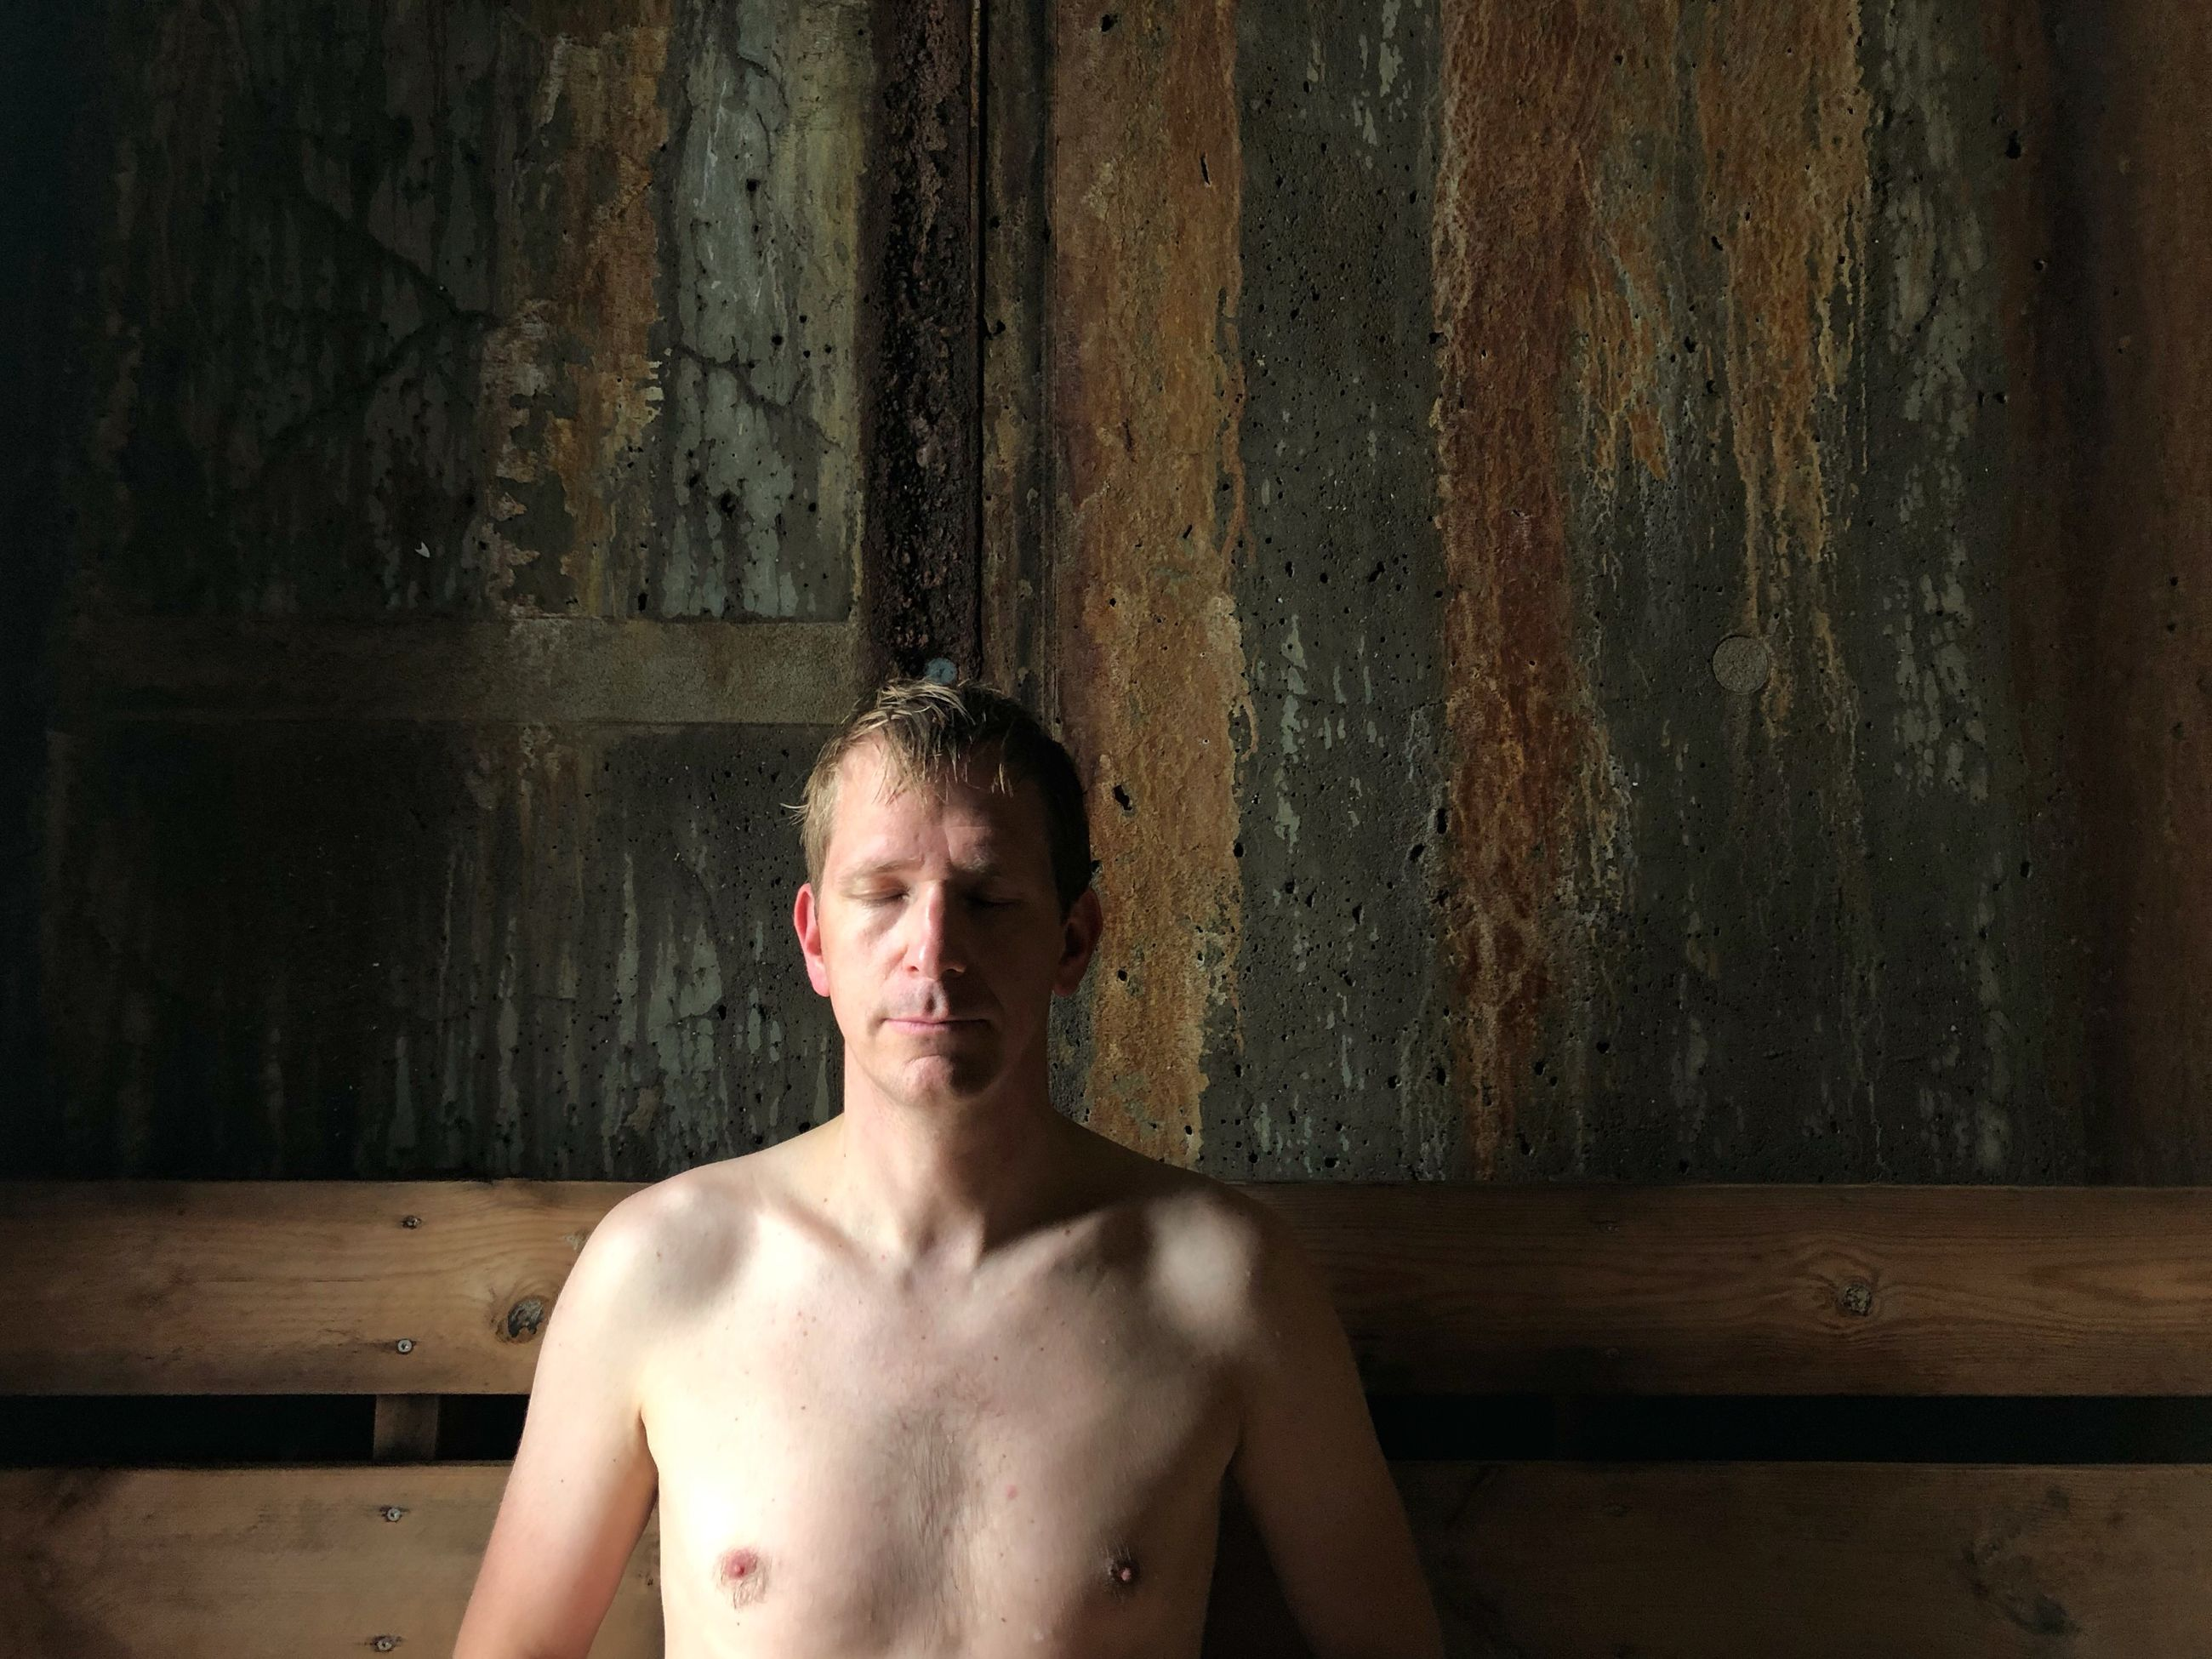 shirtless, one person, real people, lifestyles, portrait, front view, young adult, looking at camera, indoors, leisure activity, standing, young men, wall - building feature, adult, headshot, waist up, wood - material, males, chest, contemplation